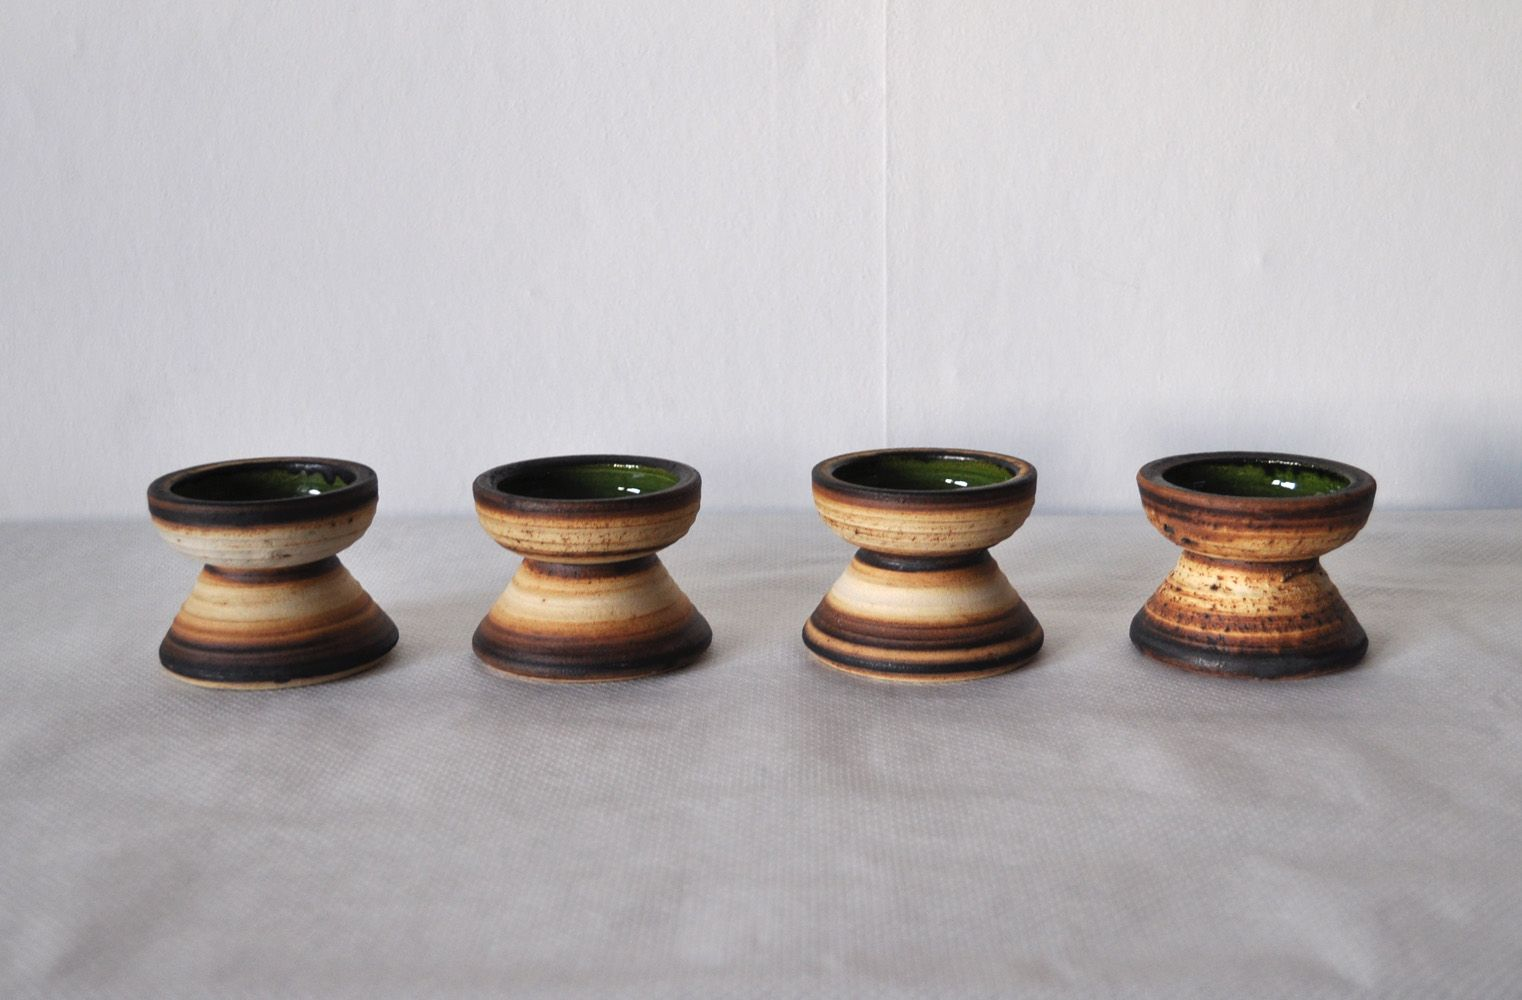 Charming Vintage Ceramic Candle Holders By Brigitte Andrzejak, Set Of 4 For Sale At  Pamono